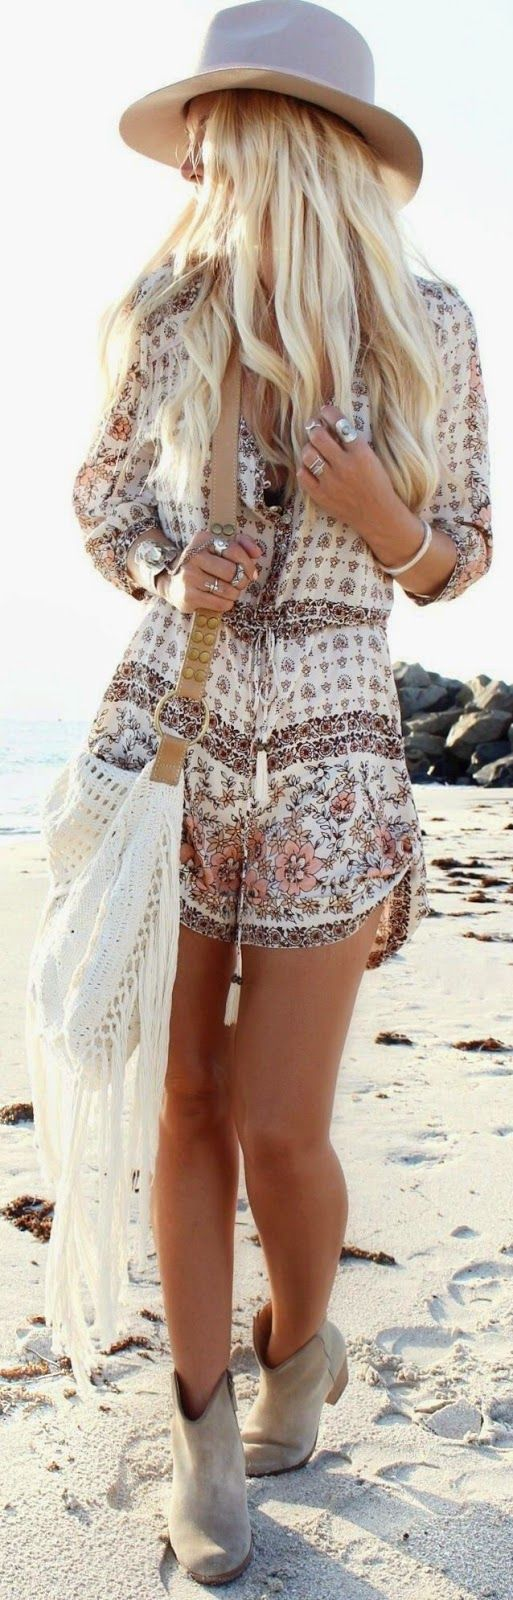 Outfit Para Boho Style Fim De Semana Relaxado Hairstyles Pinterest Rompers Summer